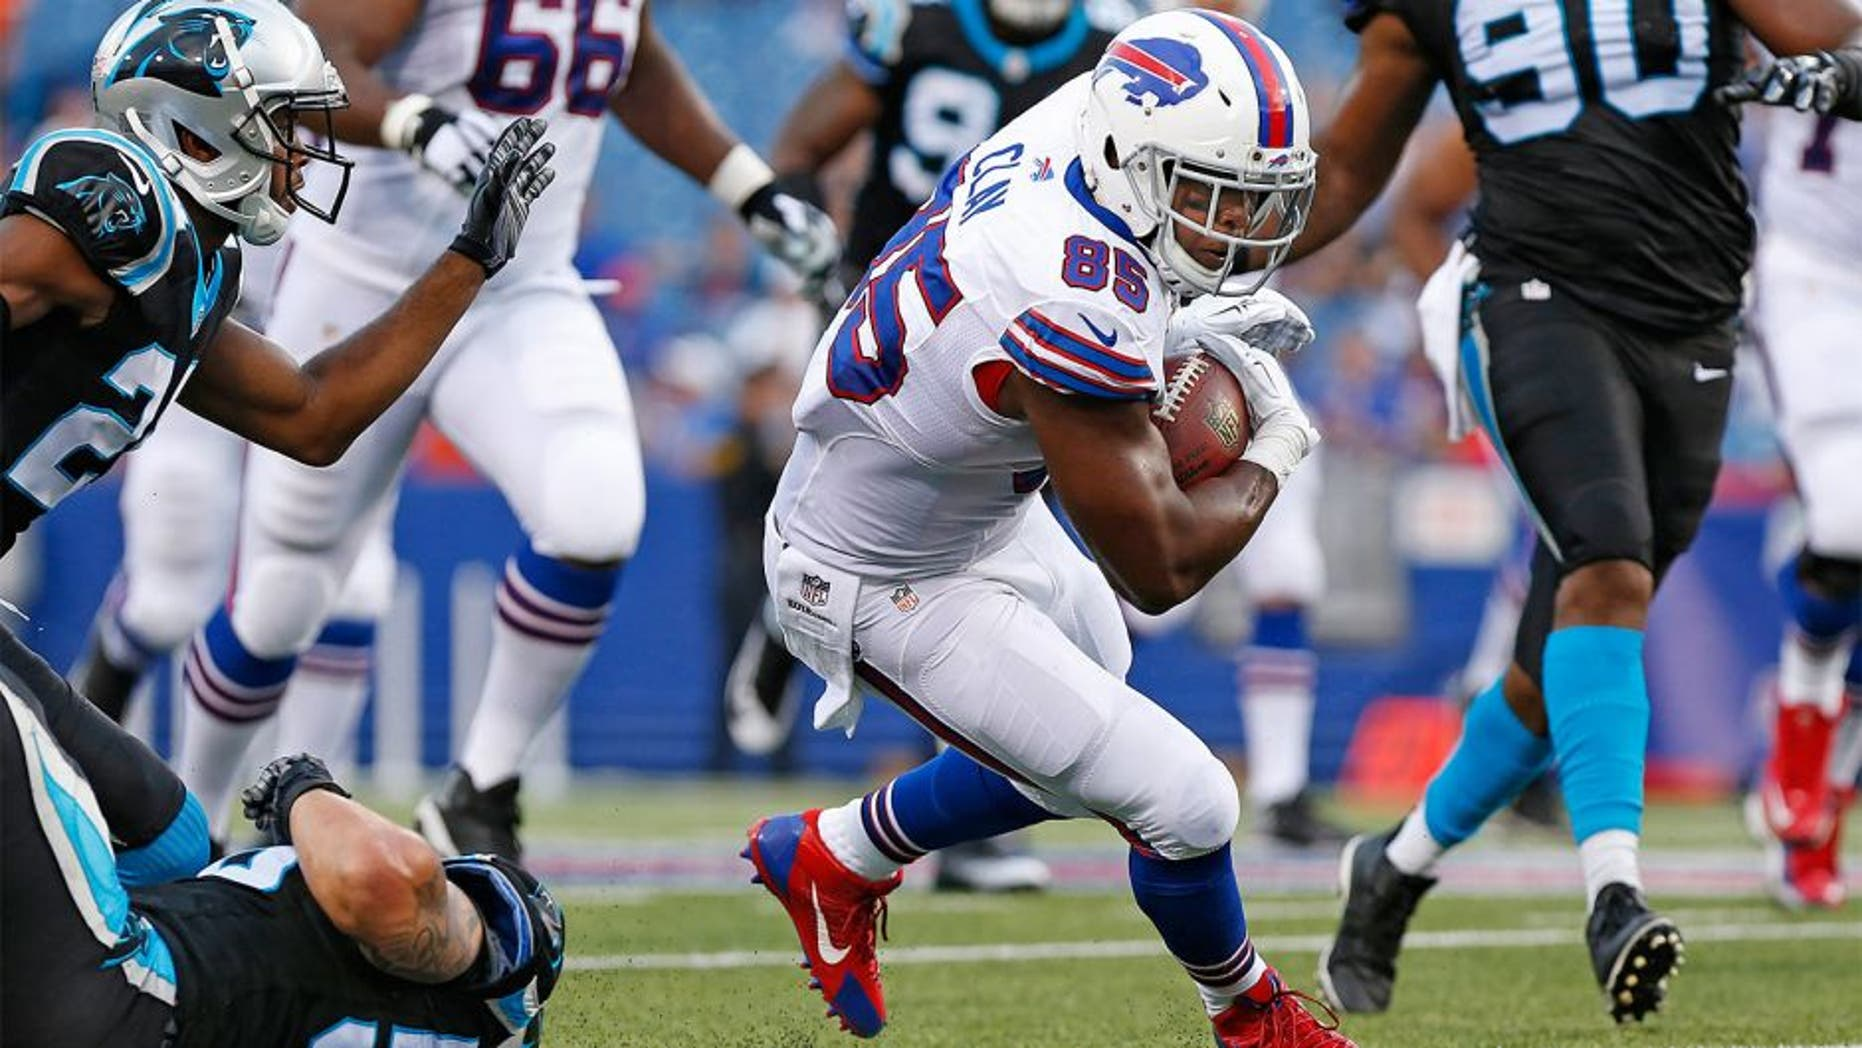 Aug 14, 2015; Orchard Park, NY, USA; Buffalo Bills tight end Charles Clay (85) runs with the ball after a catch against the Carolina Panthers during the first quarter at a preseason NFL football game at Ralph Wilson Stadium. Mandatory Credit: Kevin Hoffman-USA TODAY Sports